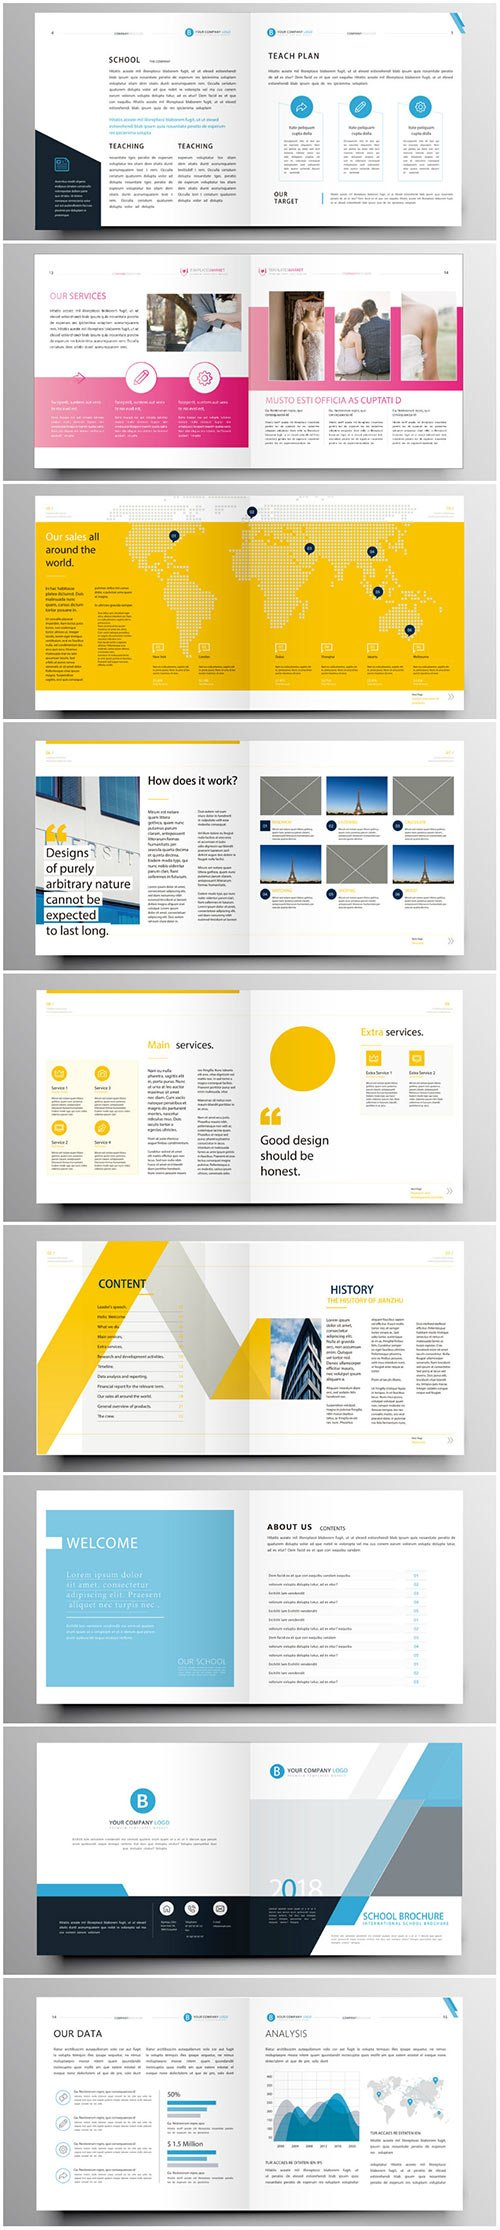 Brochure template vector layout design, corporate business annual report, magazine, flyer mockup # 206